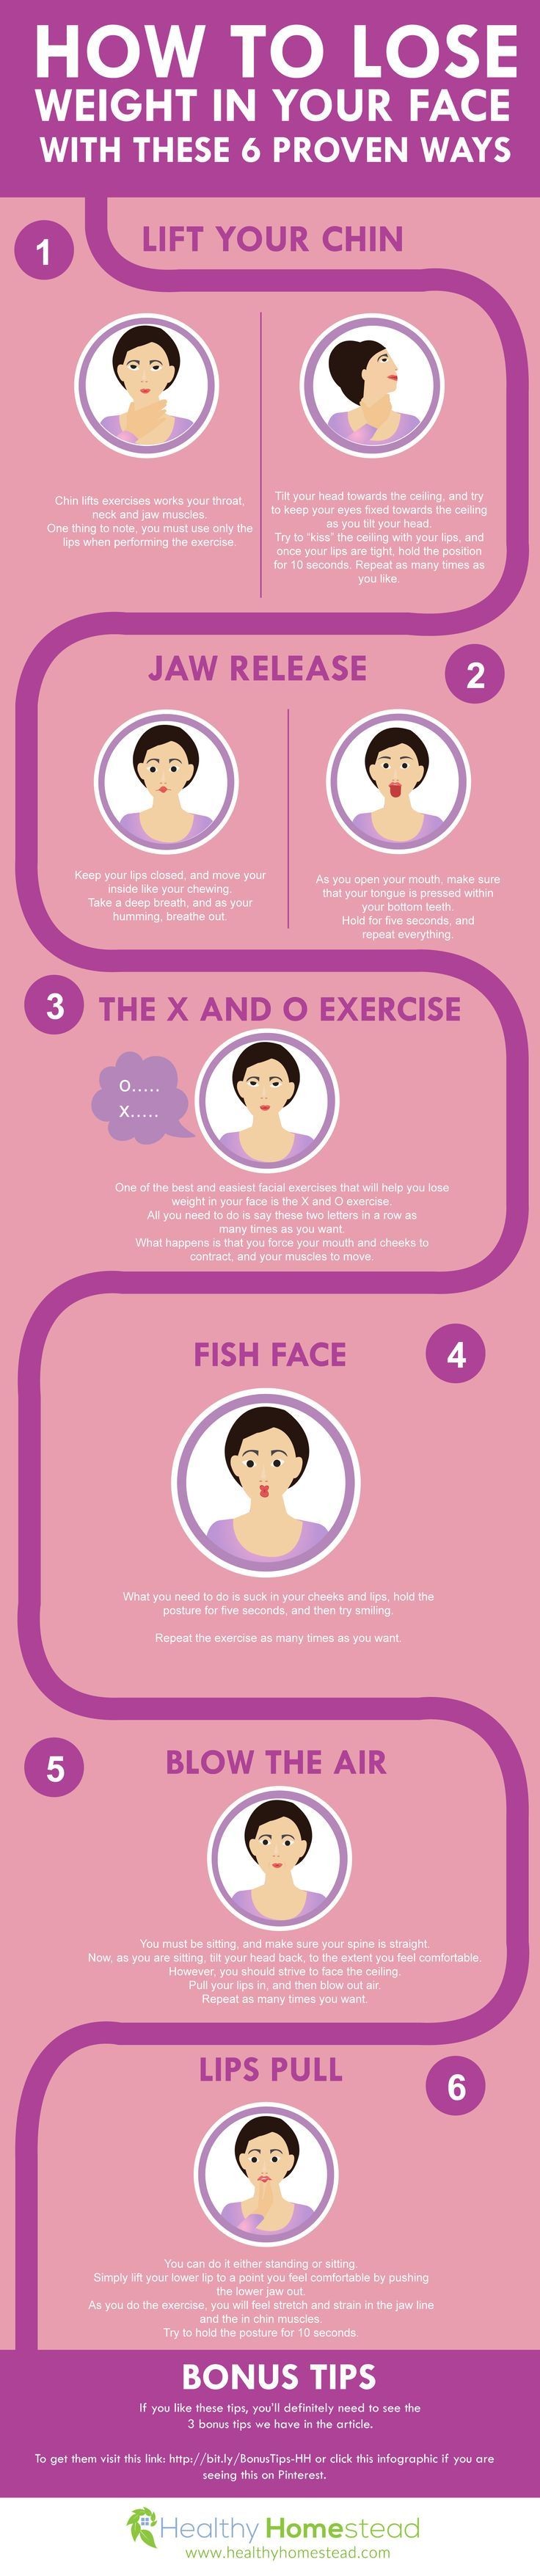 Will this works? Haha - How to Lose Weight in Your Face With These 6 Proven Ways